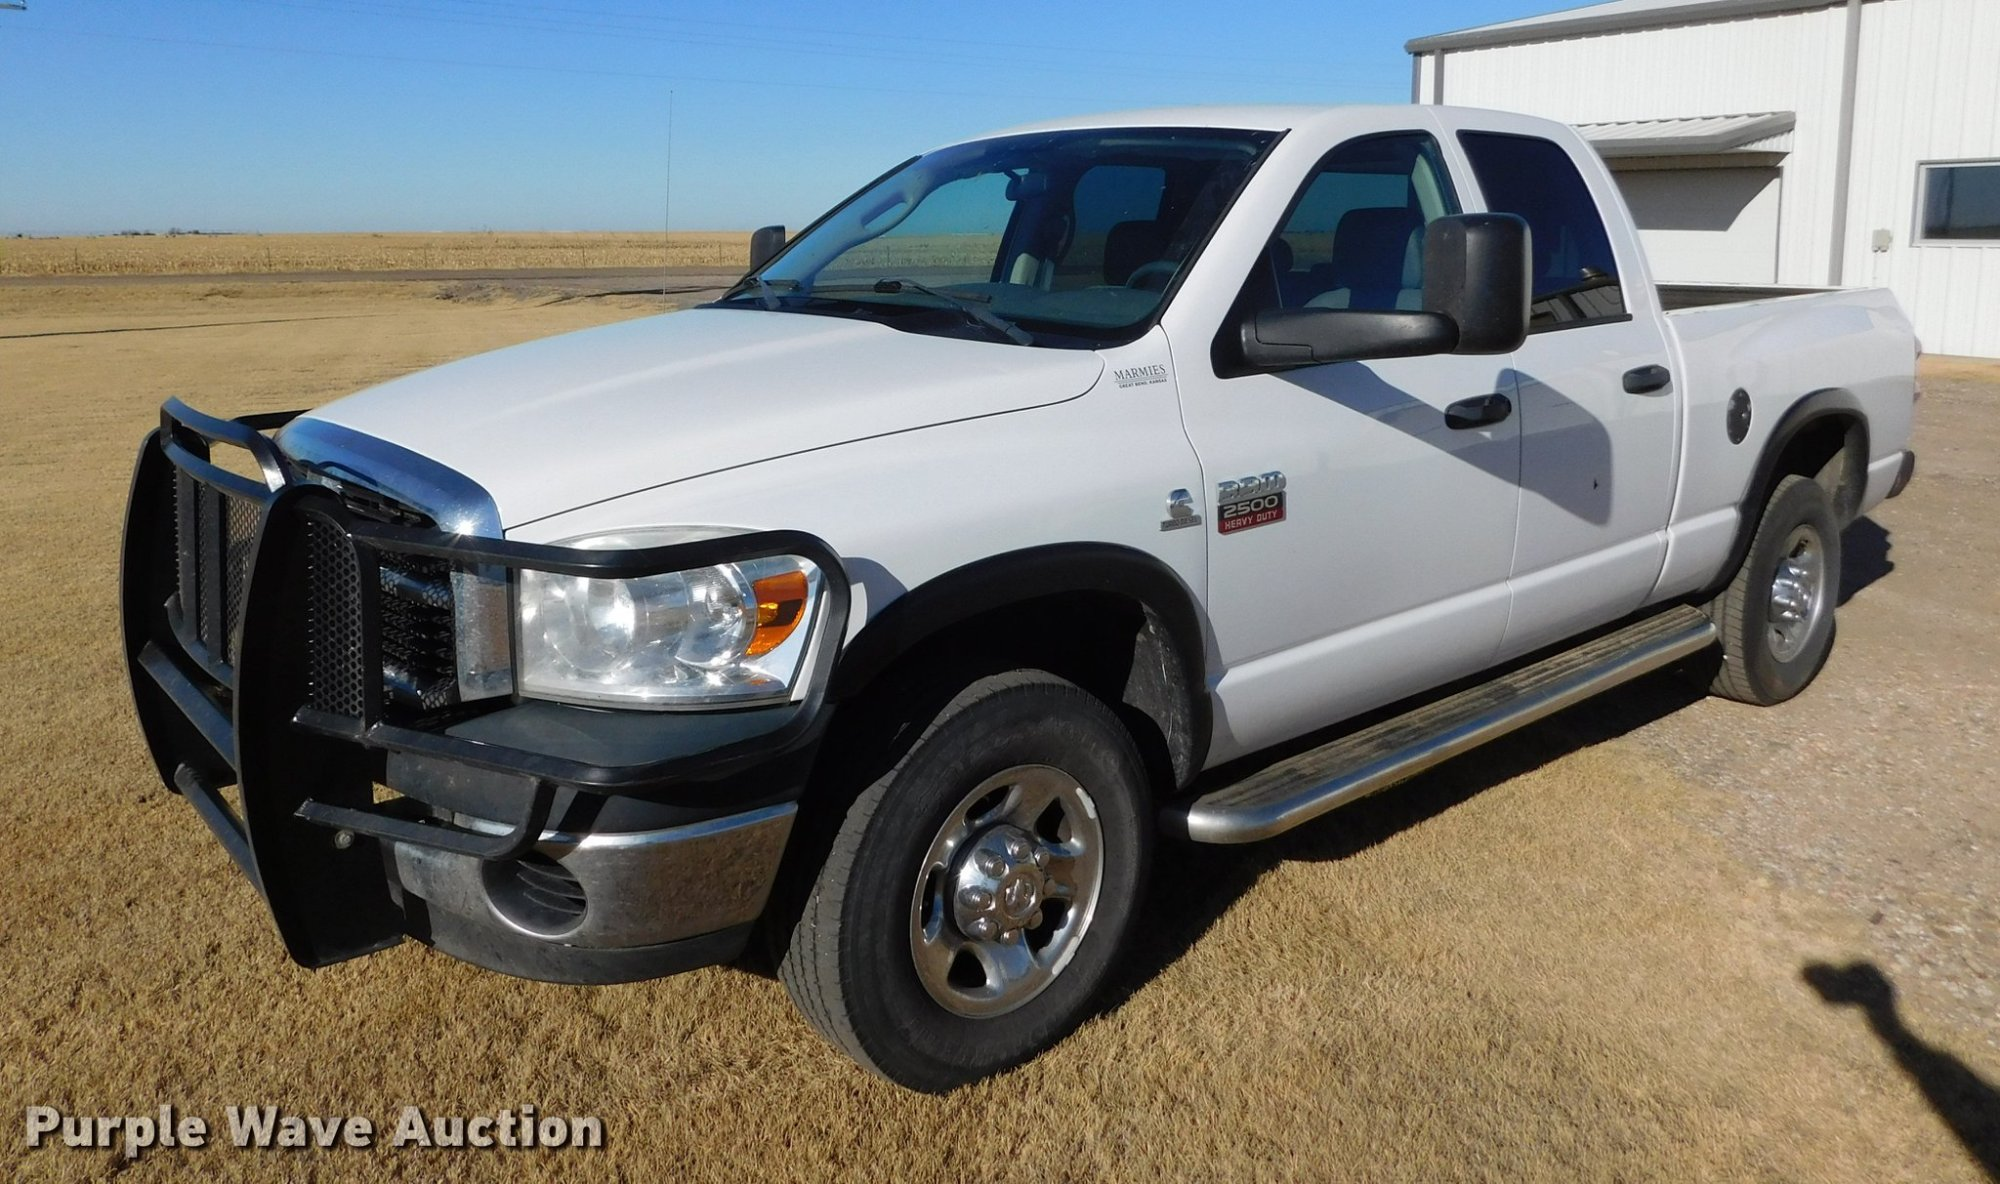 hight resolution of dc8440 image for item dc8440 2009 dodge ram 2500 quad cab